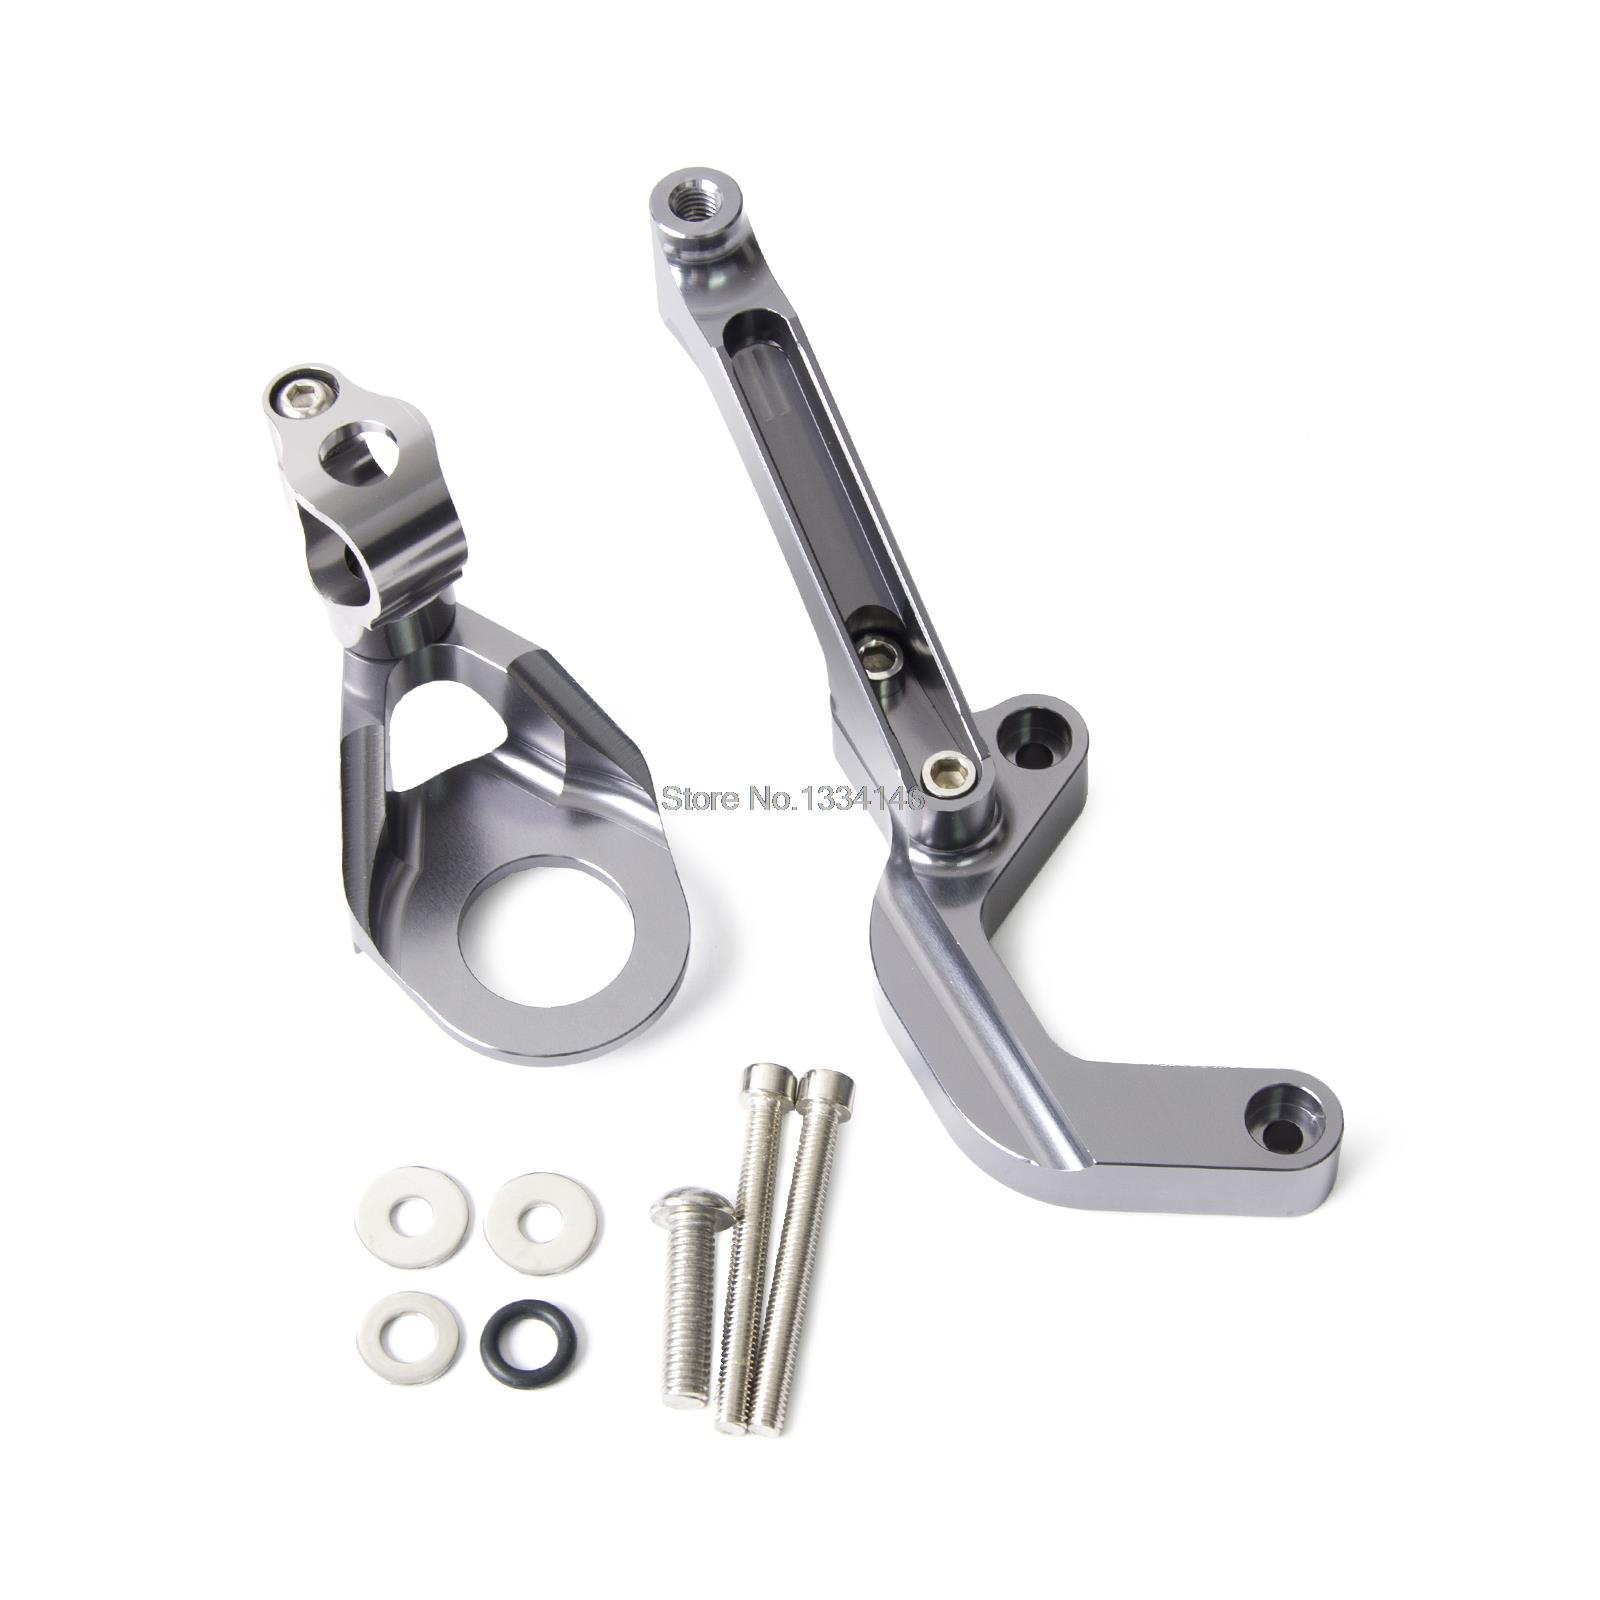 CNC Steering Damper Mounting Kit for Suzuki GSX-R1000 09 10 11 2012 13 14 15<br>